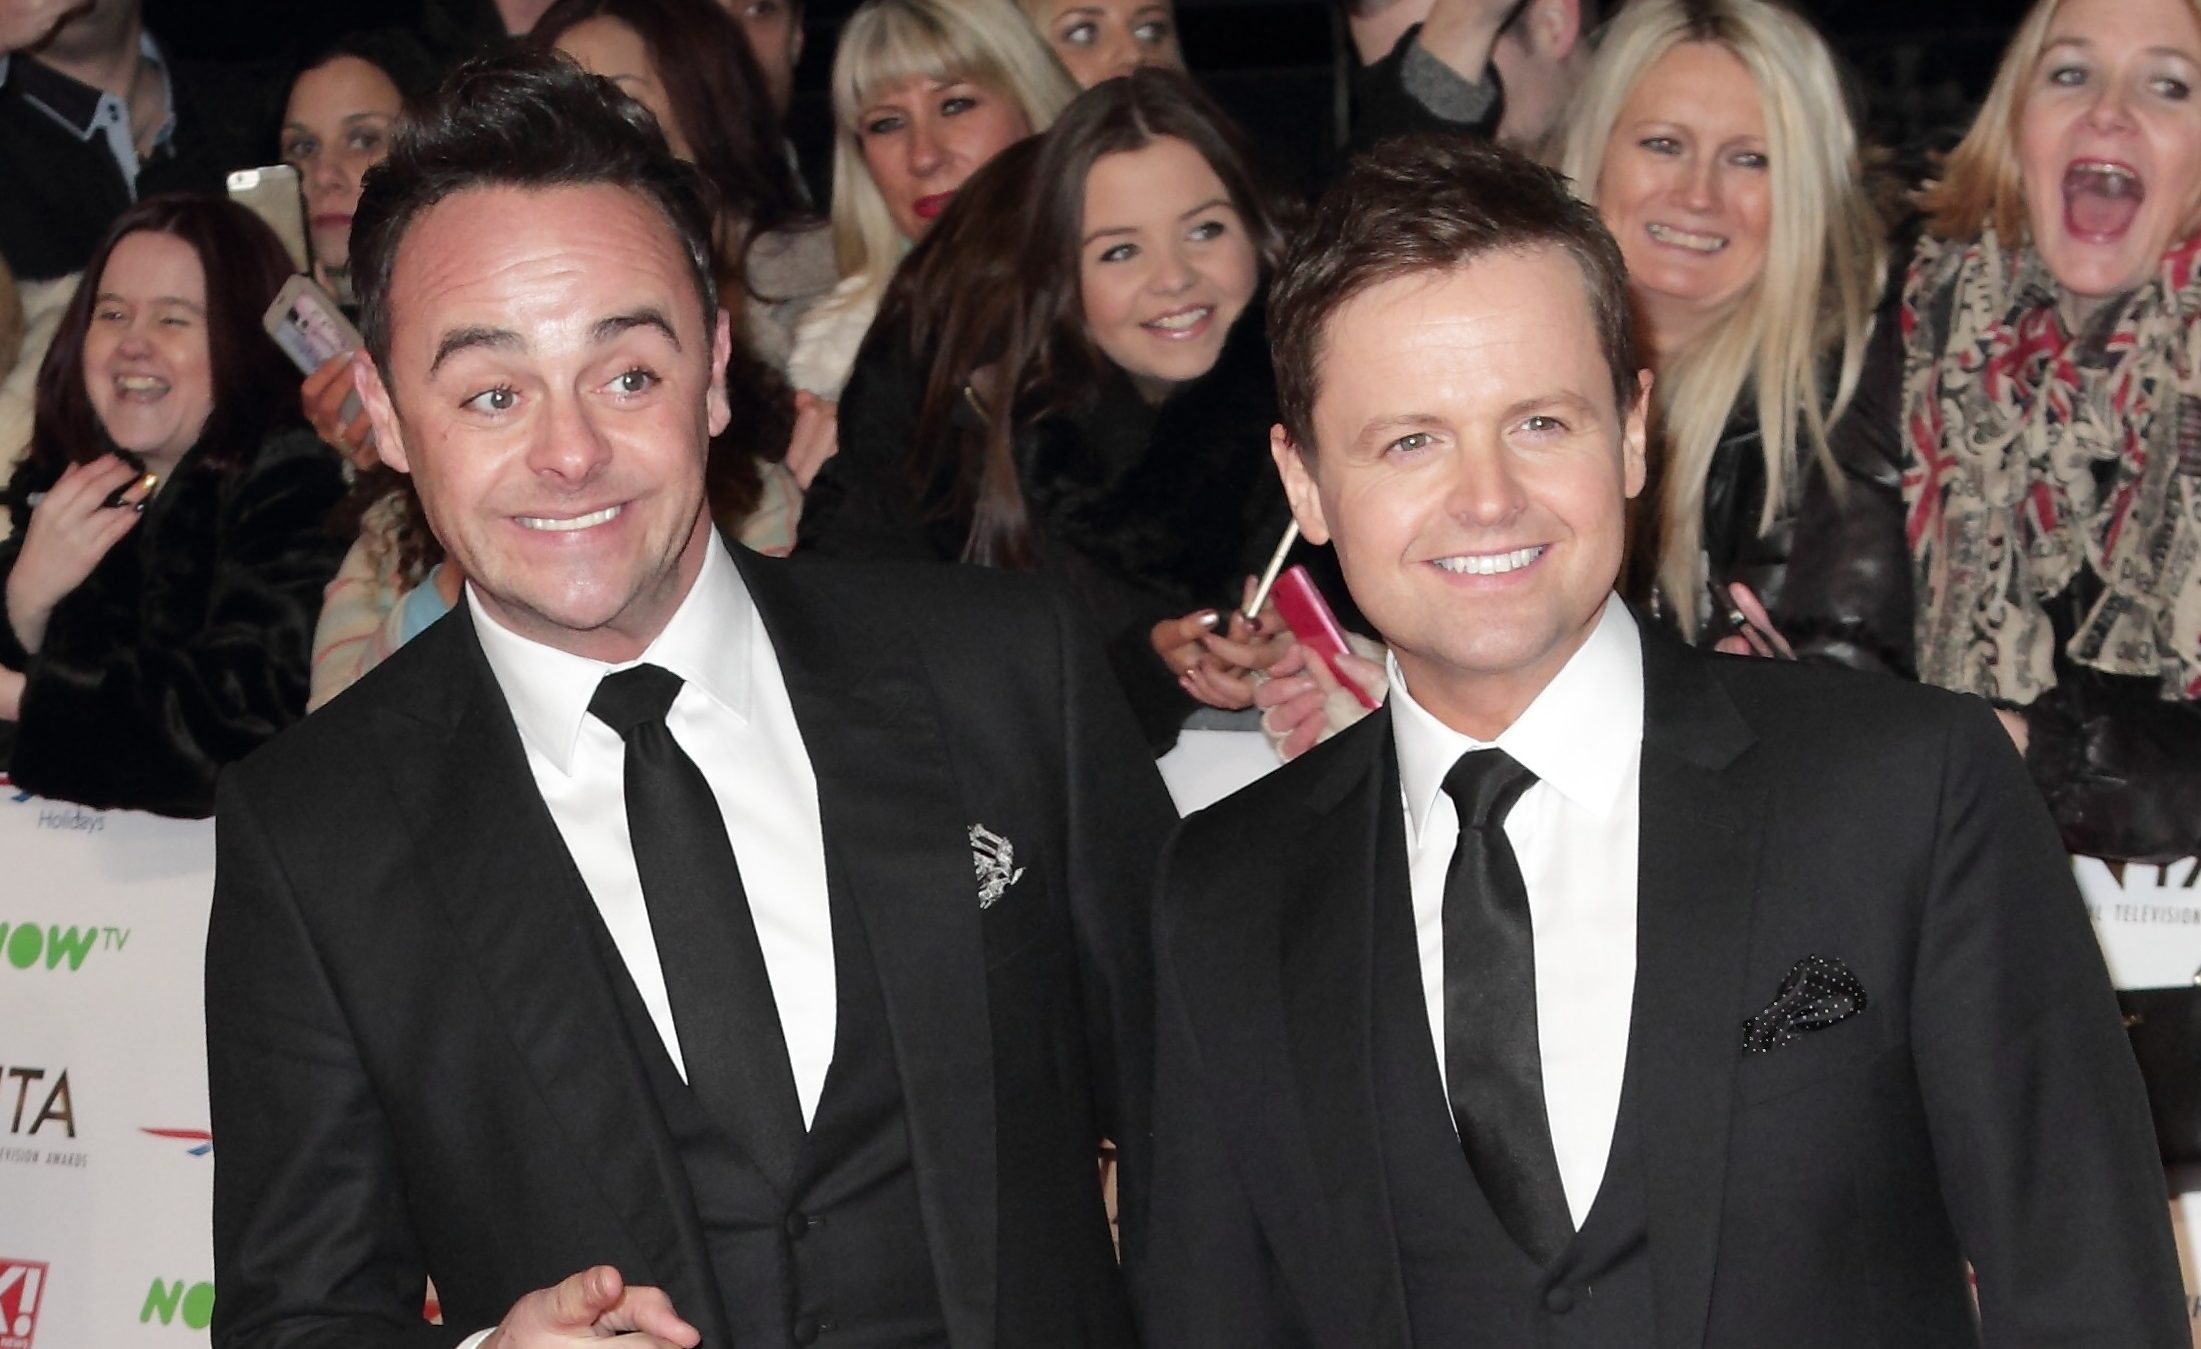 Ant McPartlin will return to presenting work on Britain's Got Talent TOMORROW